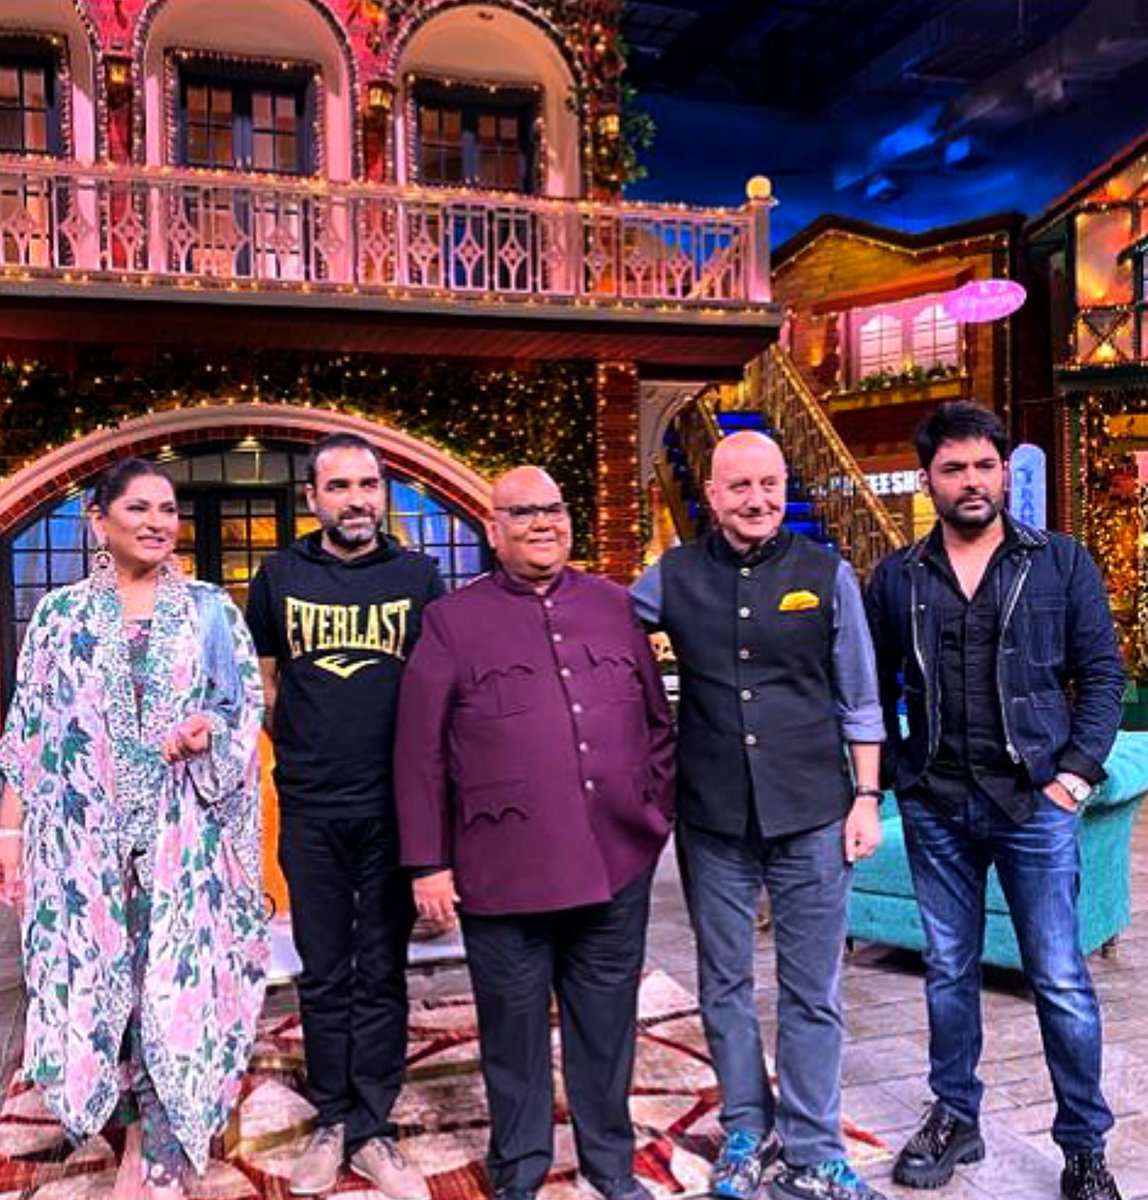 One more super entertaining episode is coming tonight with @AnupamPKher 🥳🥳❤❤🙏🙏. Don't miss this fun tonight at 9:30 pm only on @SonyTV . @KapilSharmaK9 🥳🥳❤❤